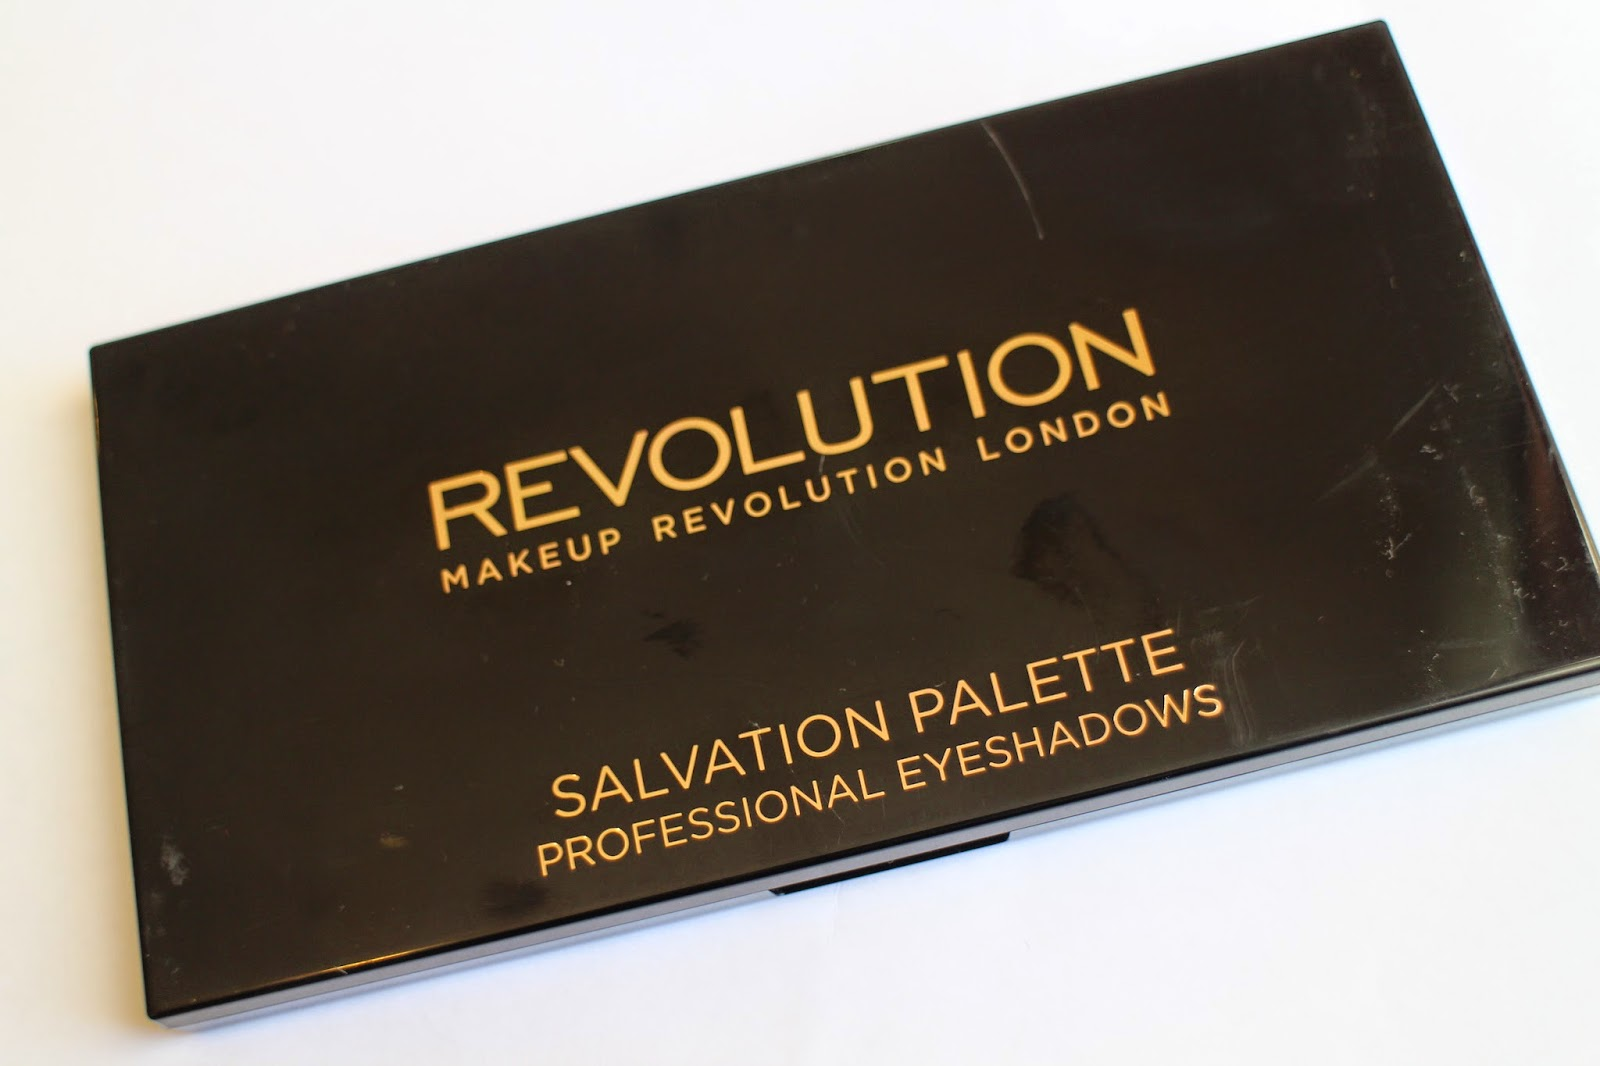 makeup revolution, makeup revolution palette, makeup revolution review, makeup revolution salvation palette review, cheap makeup, best brand makeup, eyeshadow review